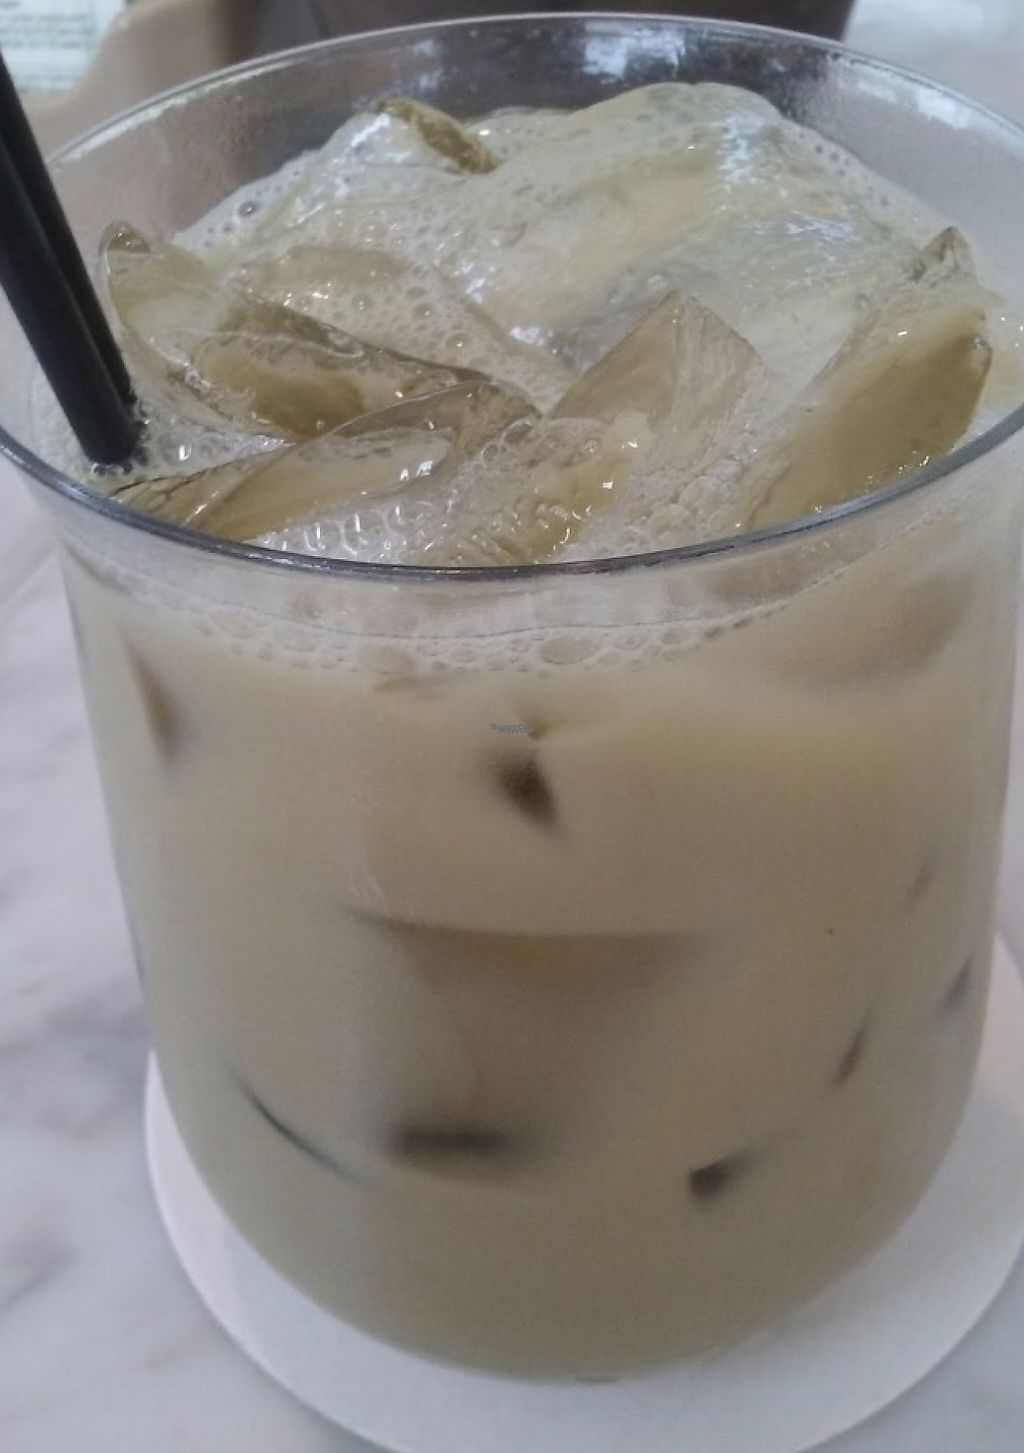 """Photo of True Food Kitchen  by <a href=""""/members/profile/veggie_htx"""">veggie_htx</a> <br/>Almond milk matcha horchata (vegan as-is).  <br/> August 12, 2016  - <a href='/contact/abuse/image/63398/229093'>Report</a>"""